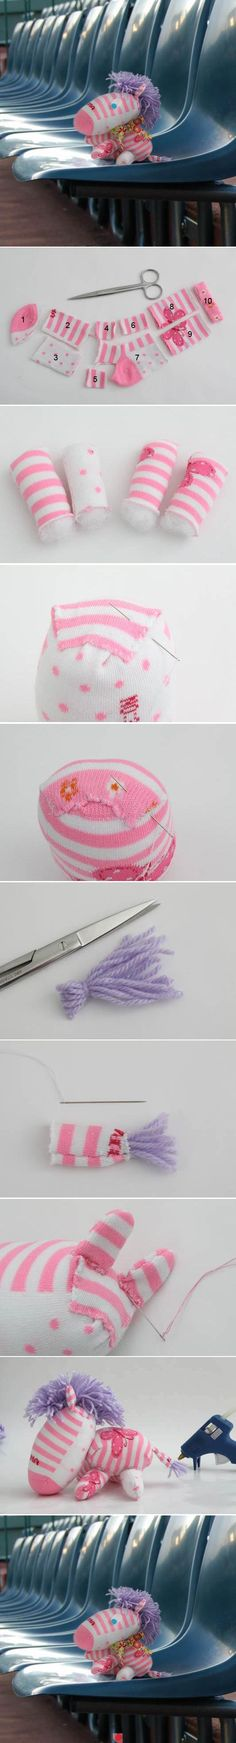 DIY Pink And White Sock Zebra